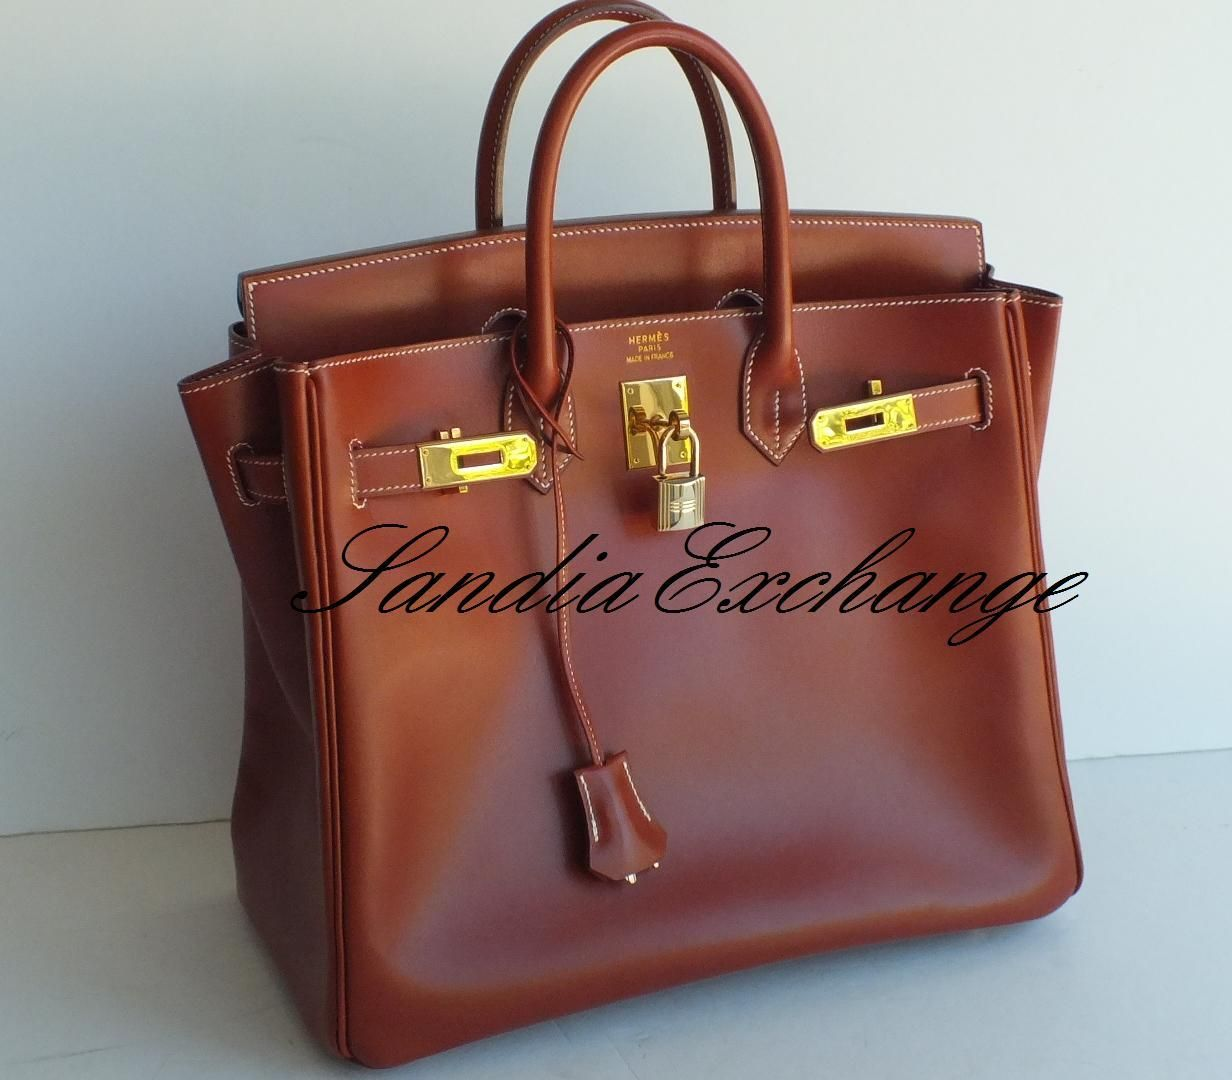 Hermes HAC 32 cm Birkin Box Calf Brick Authentic - Images hosted at  BiggerBids.com acd7a0bcce